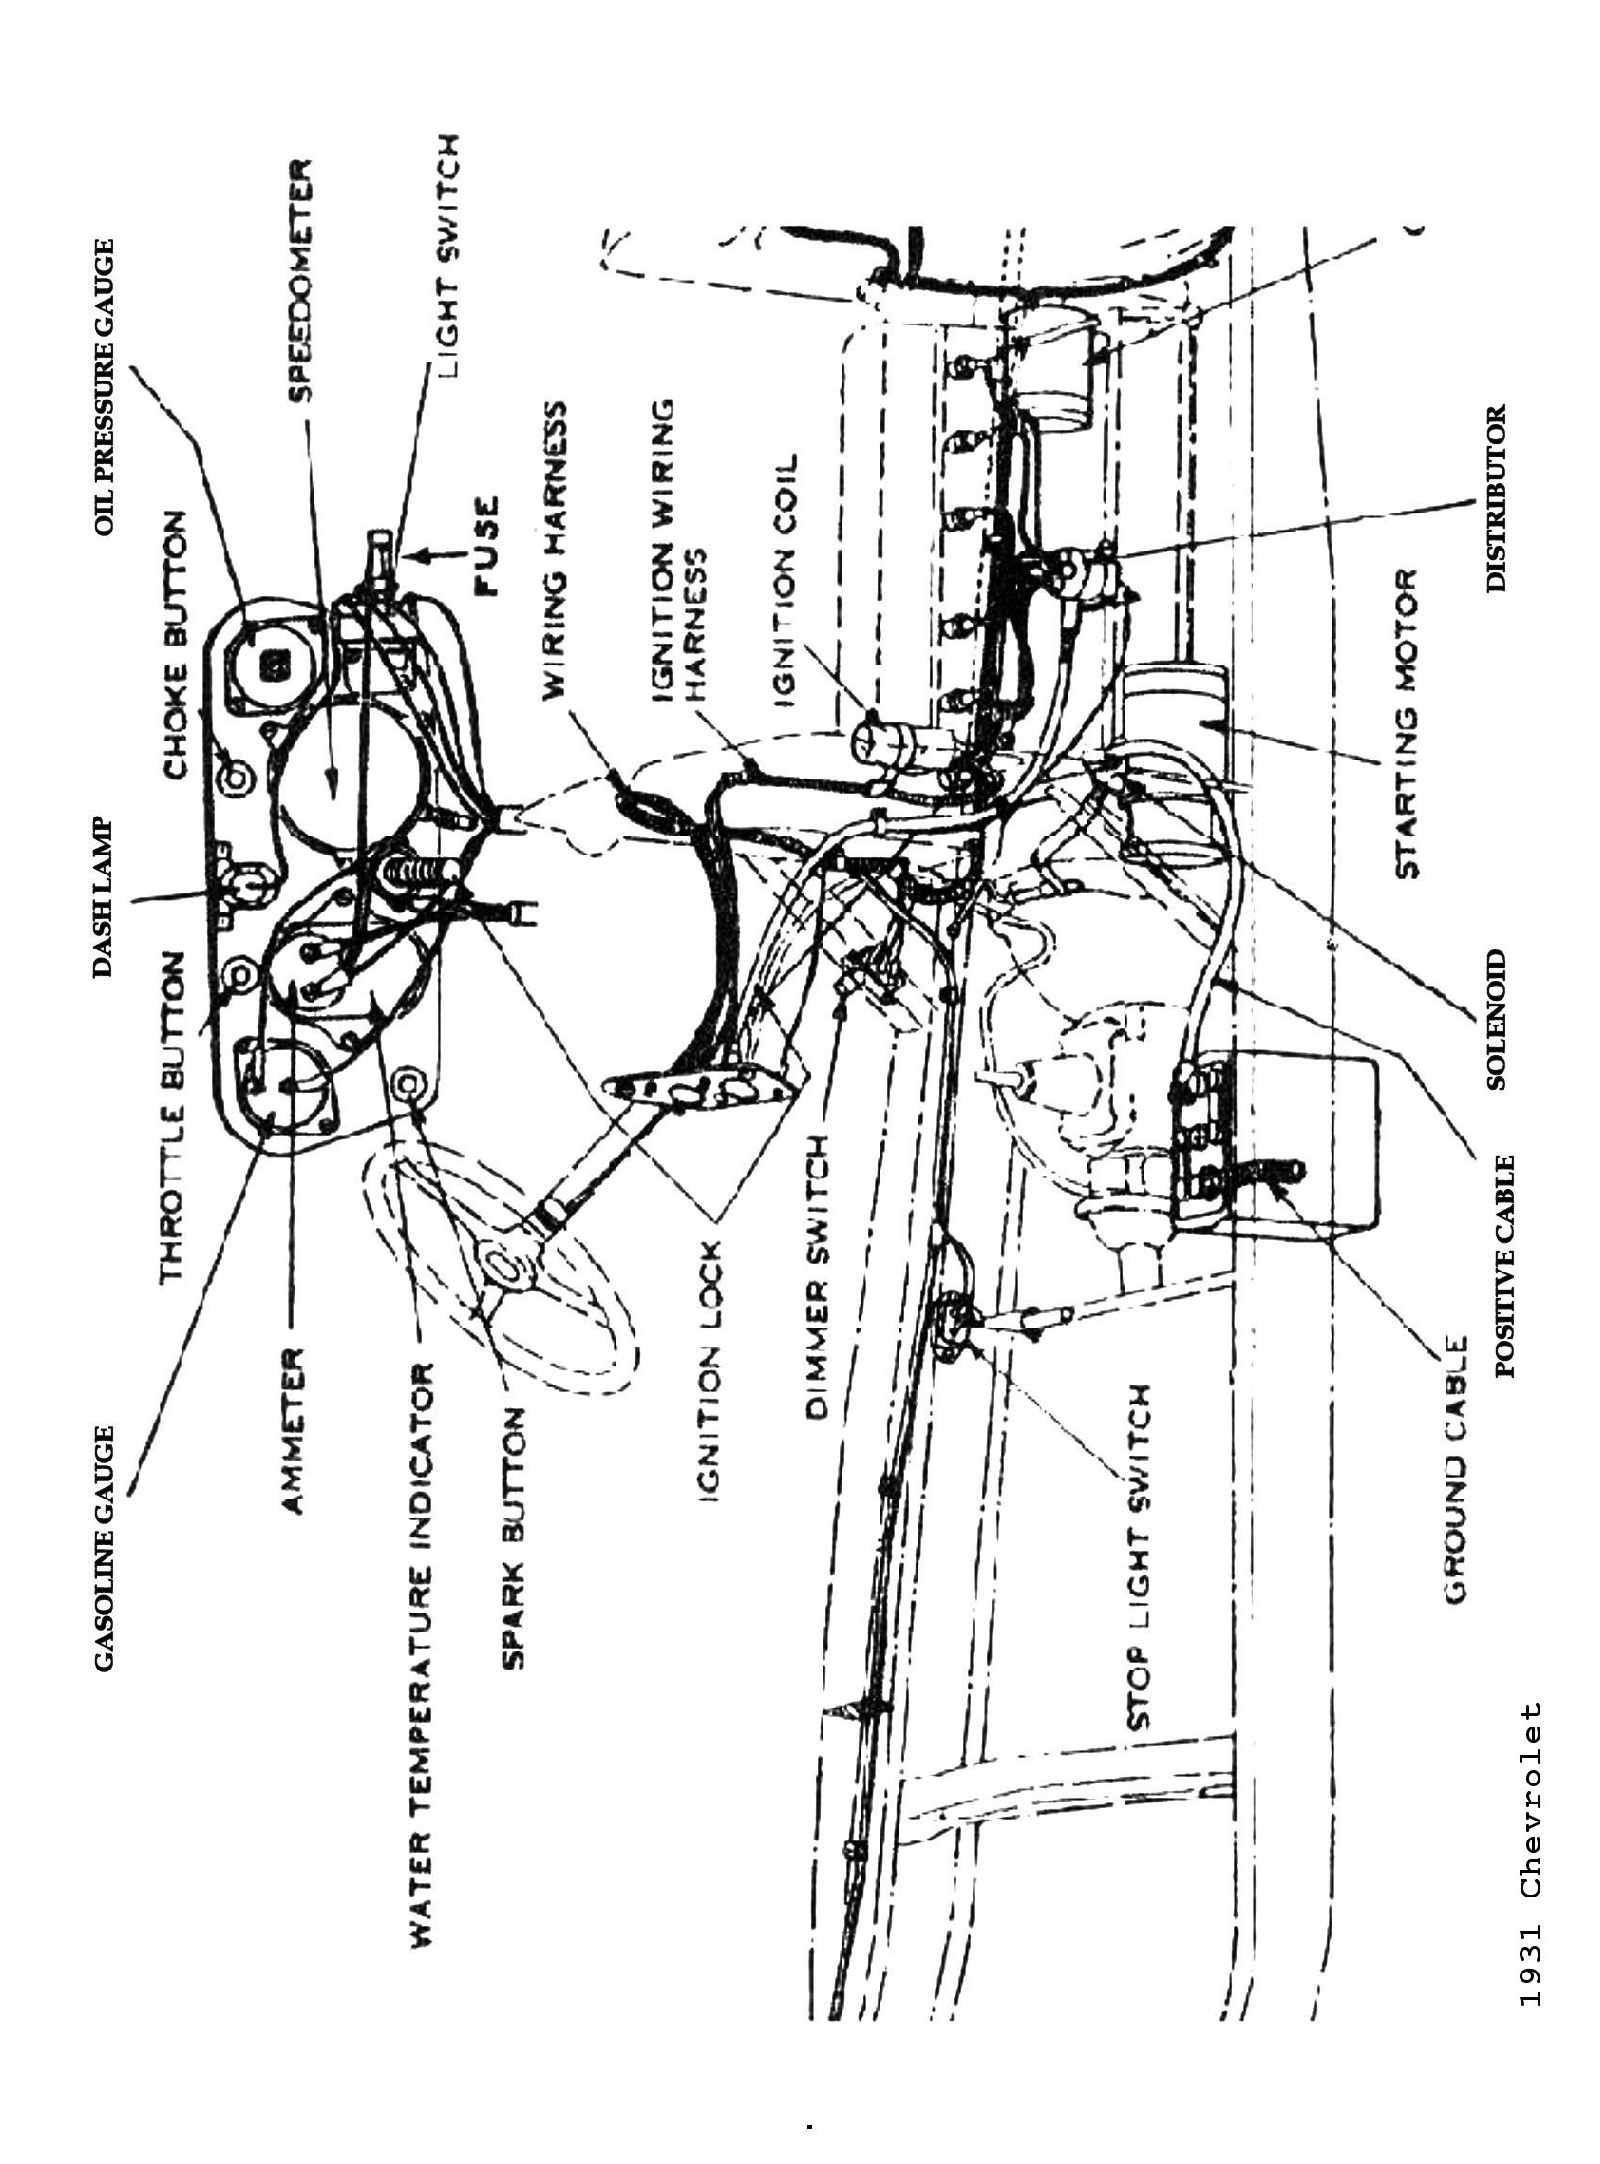 Fordfocuswd Toc likewise Harness further Cim furthermore Focus C A additionally Ka. on 1931 model a ignition wiring diagram